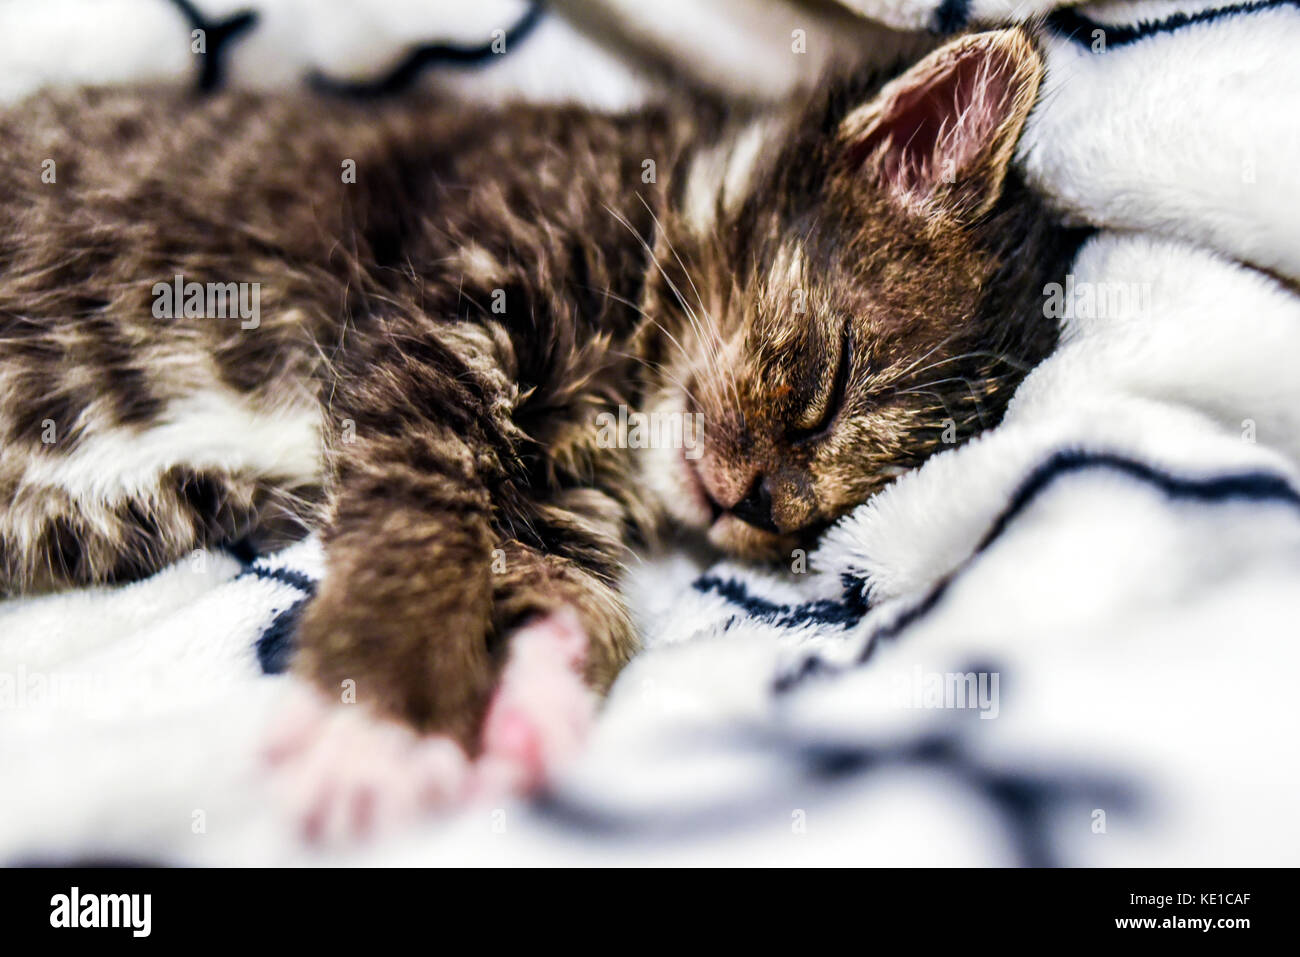 A cute little kitten sleeping in a blanket at home. Stock Photo